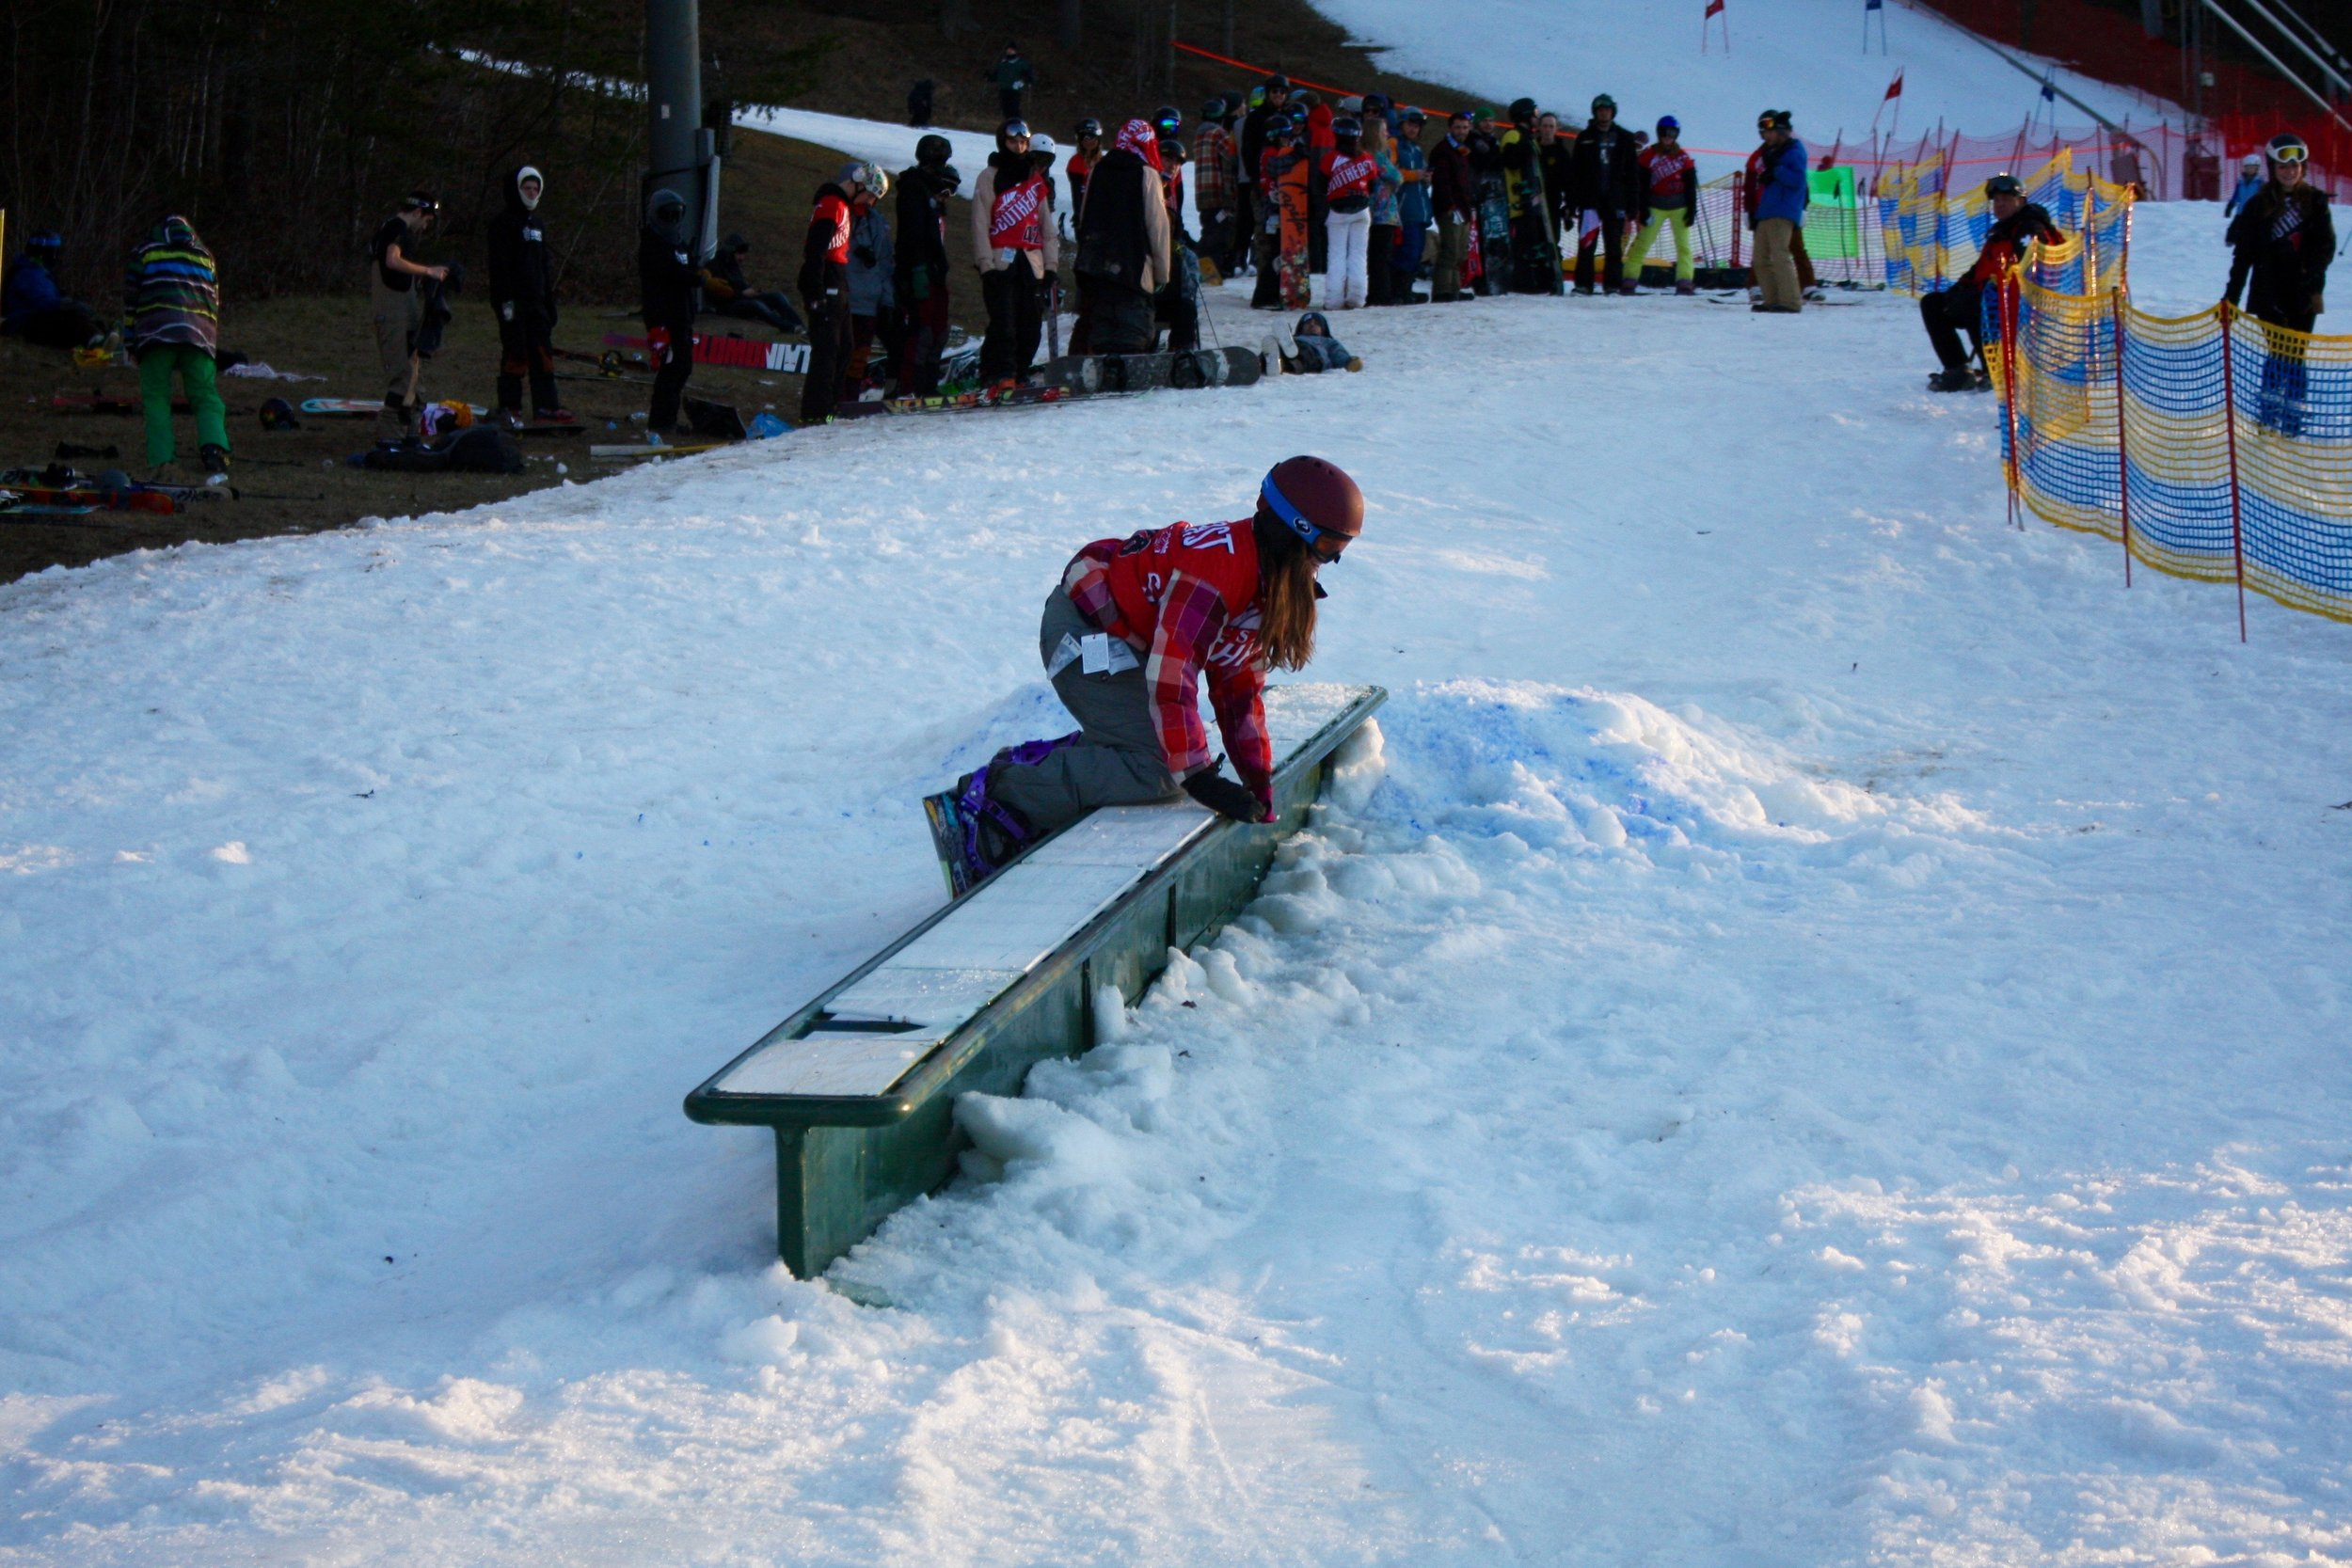 """Despite what Chandler said to the public, she could be seen on the day of the rail jam getting pretty friendly with the butter box, as photographic evidence shows. One source even stated, under the condition of anonymity, that they overheard her whispering, """" my precious ,"""" as she fifty-fiftied the feature."""